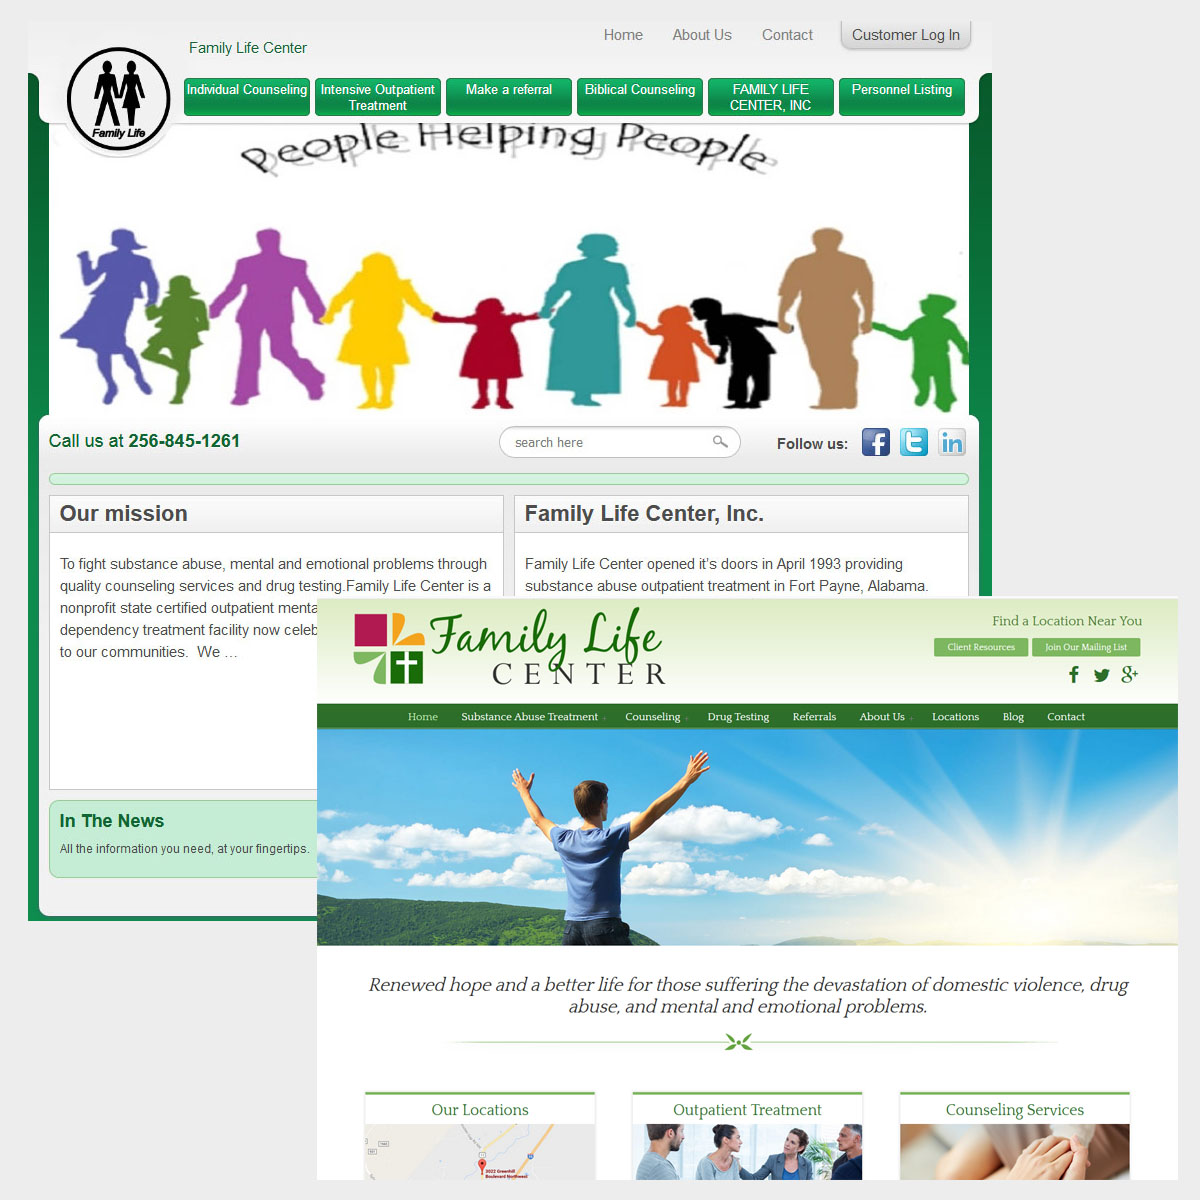 Family Life Center Before and after Rebranding